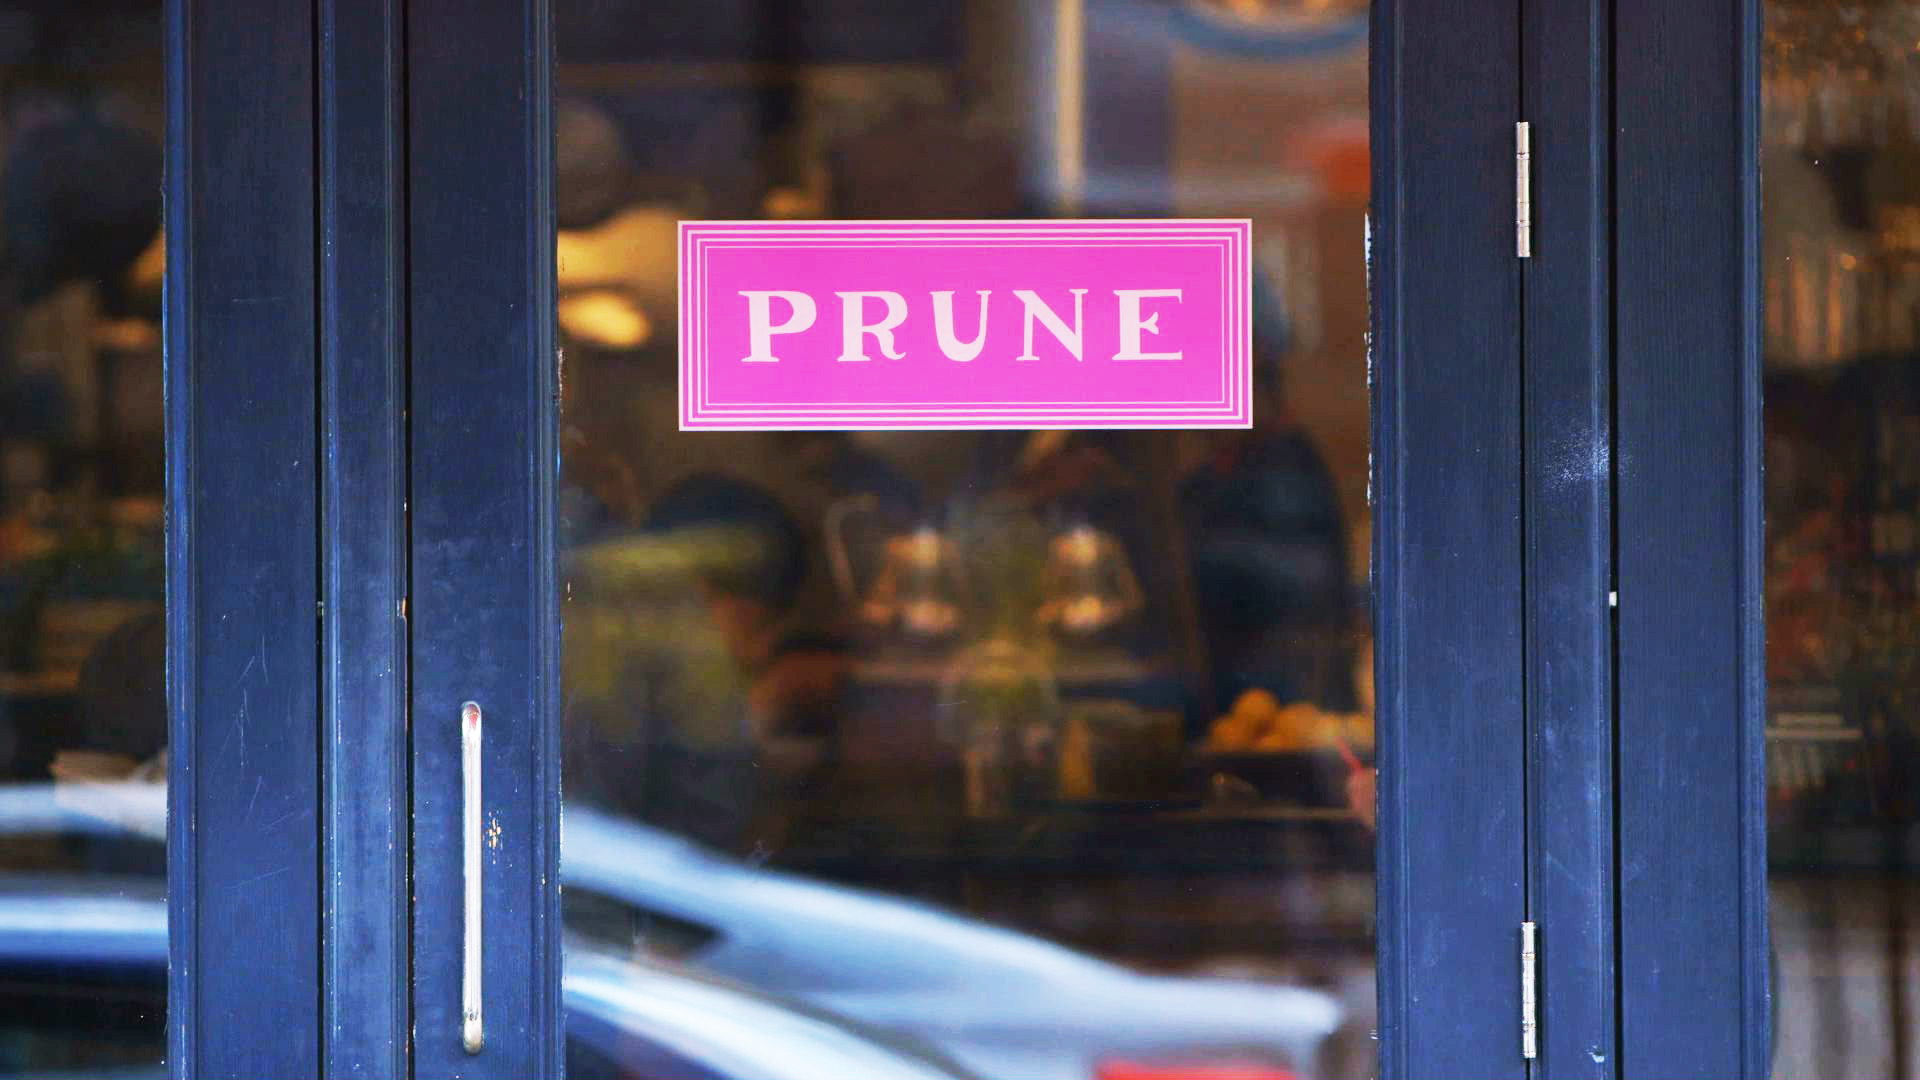 The Mind of a Chef - Season 4, Episode 1: Prune